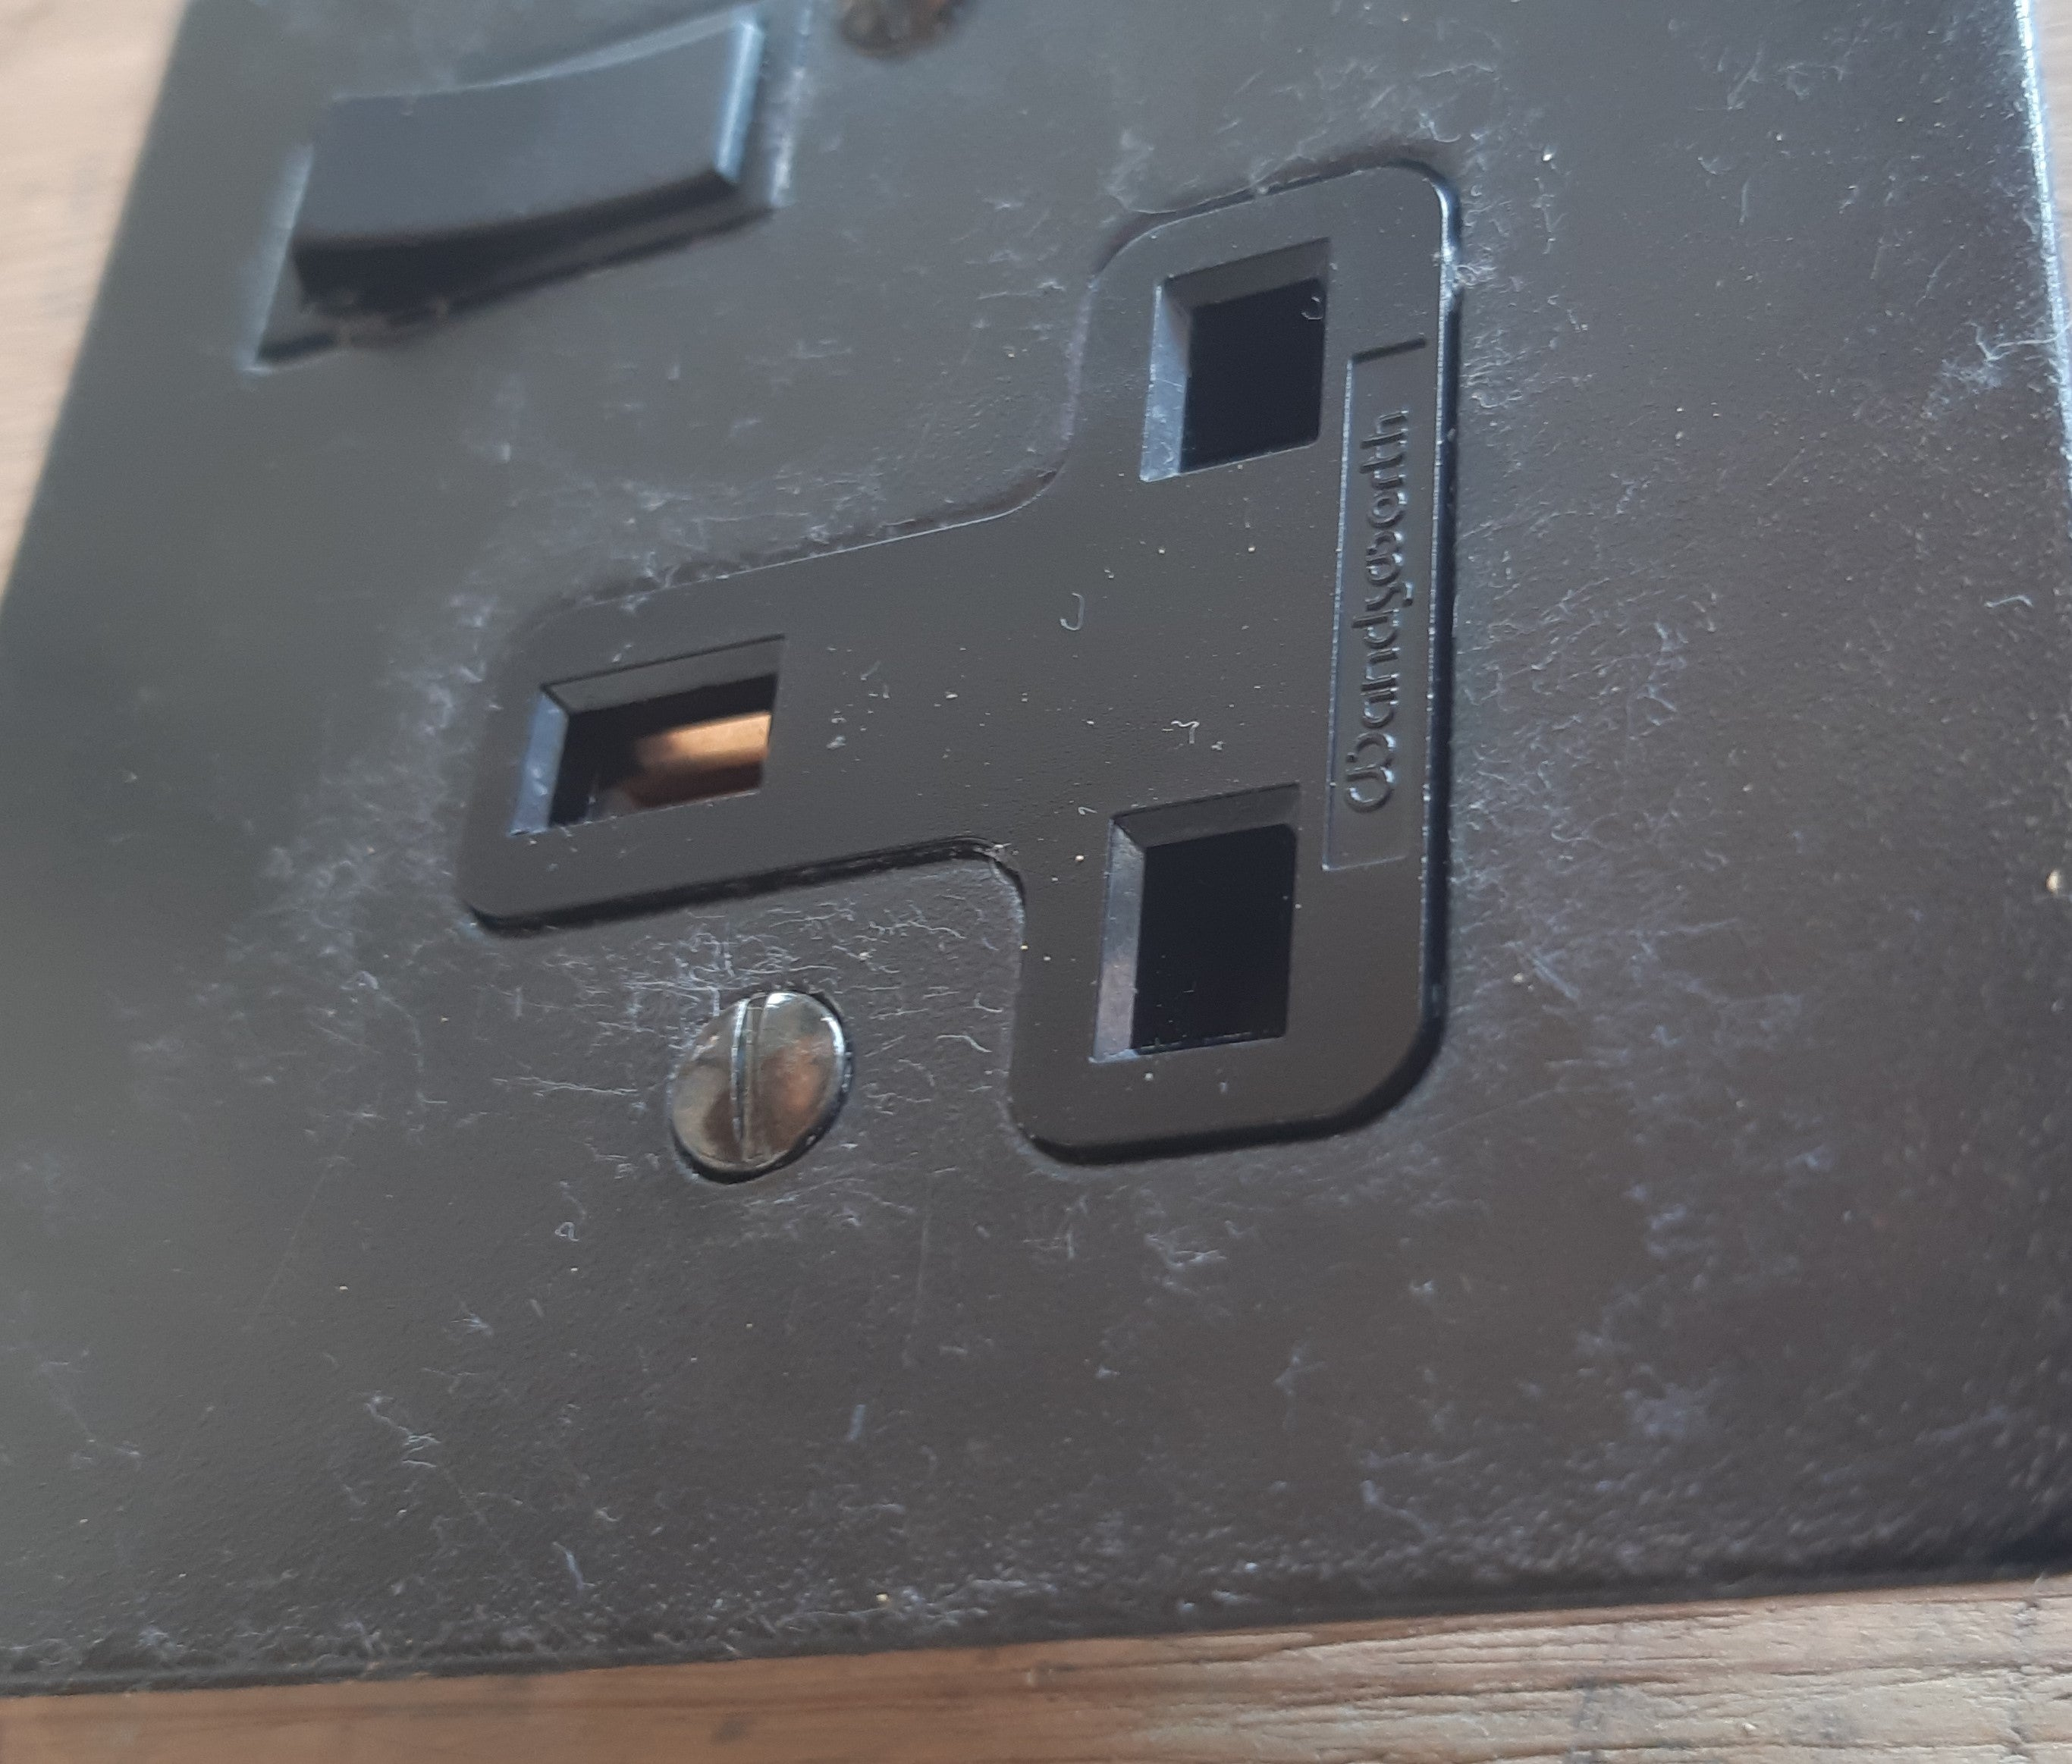 Fused Switch Connector with Neon and Outlet